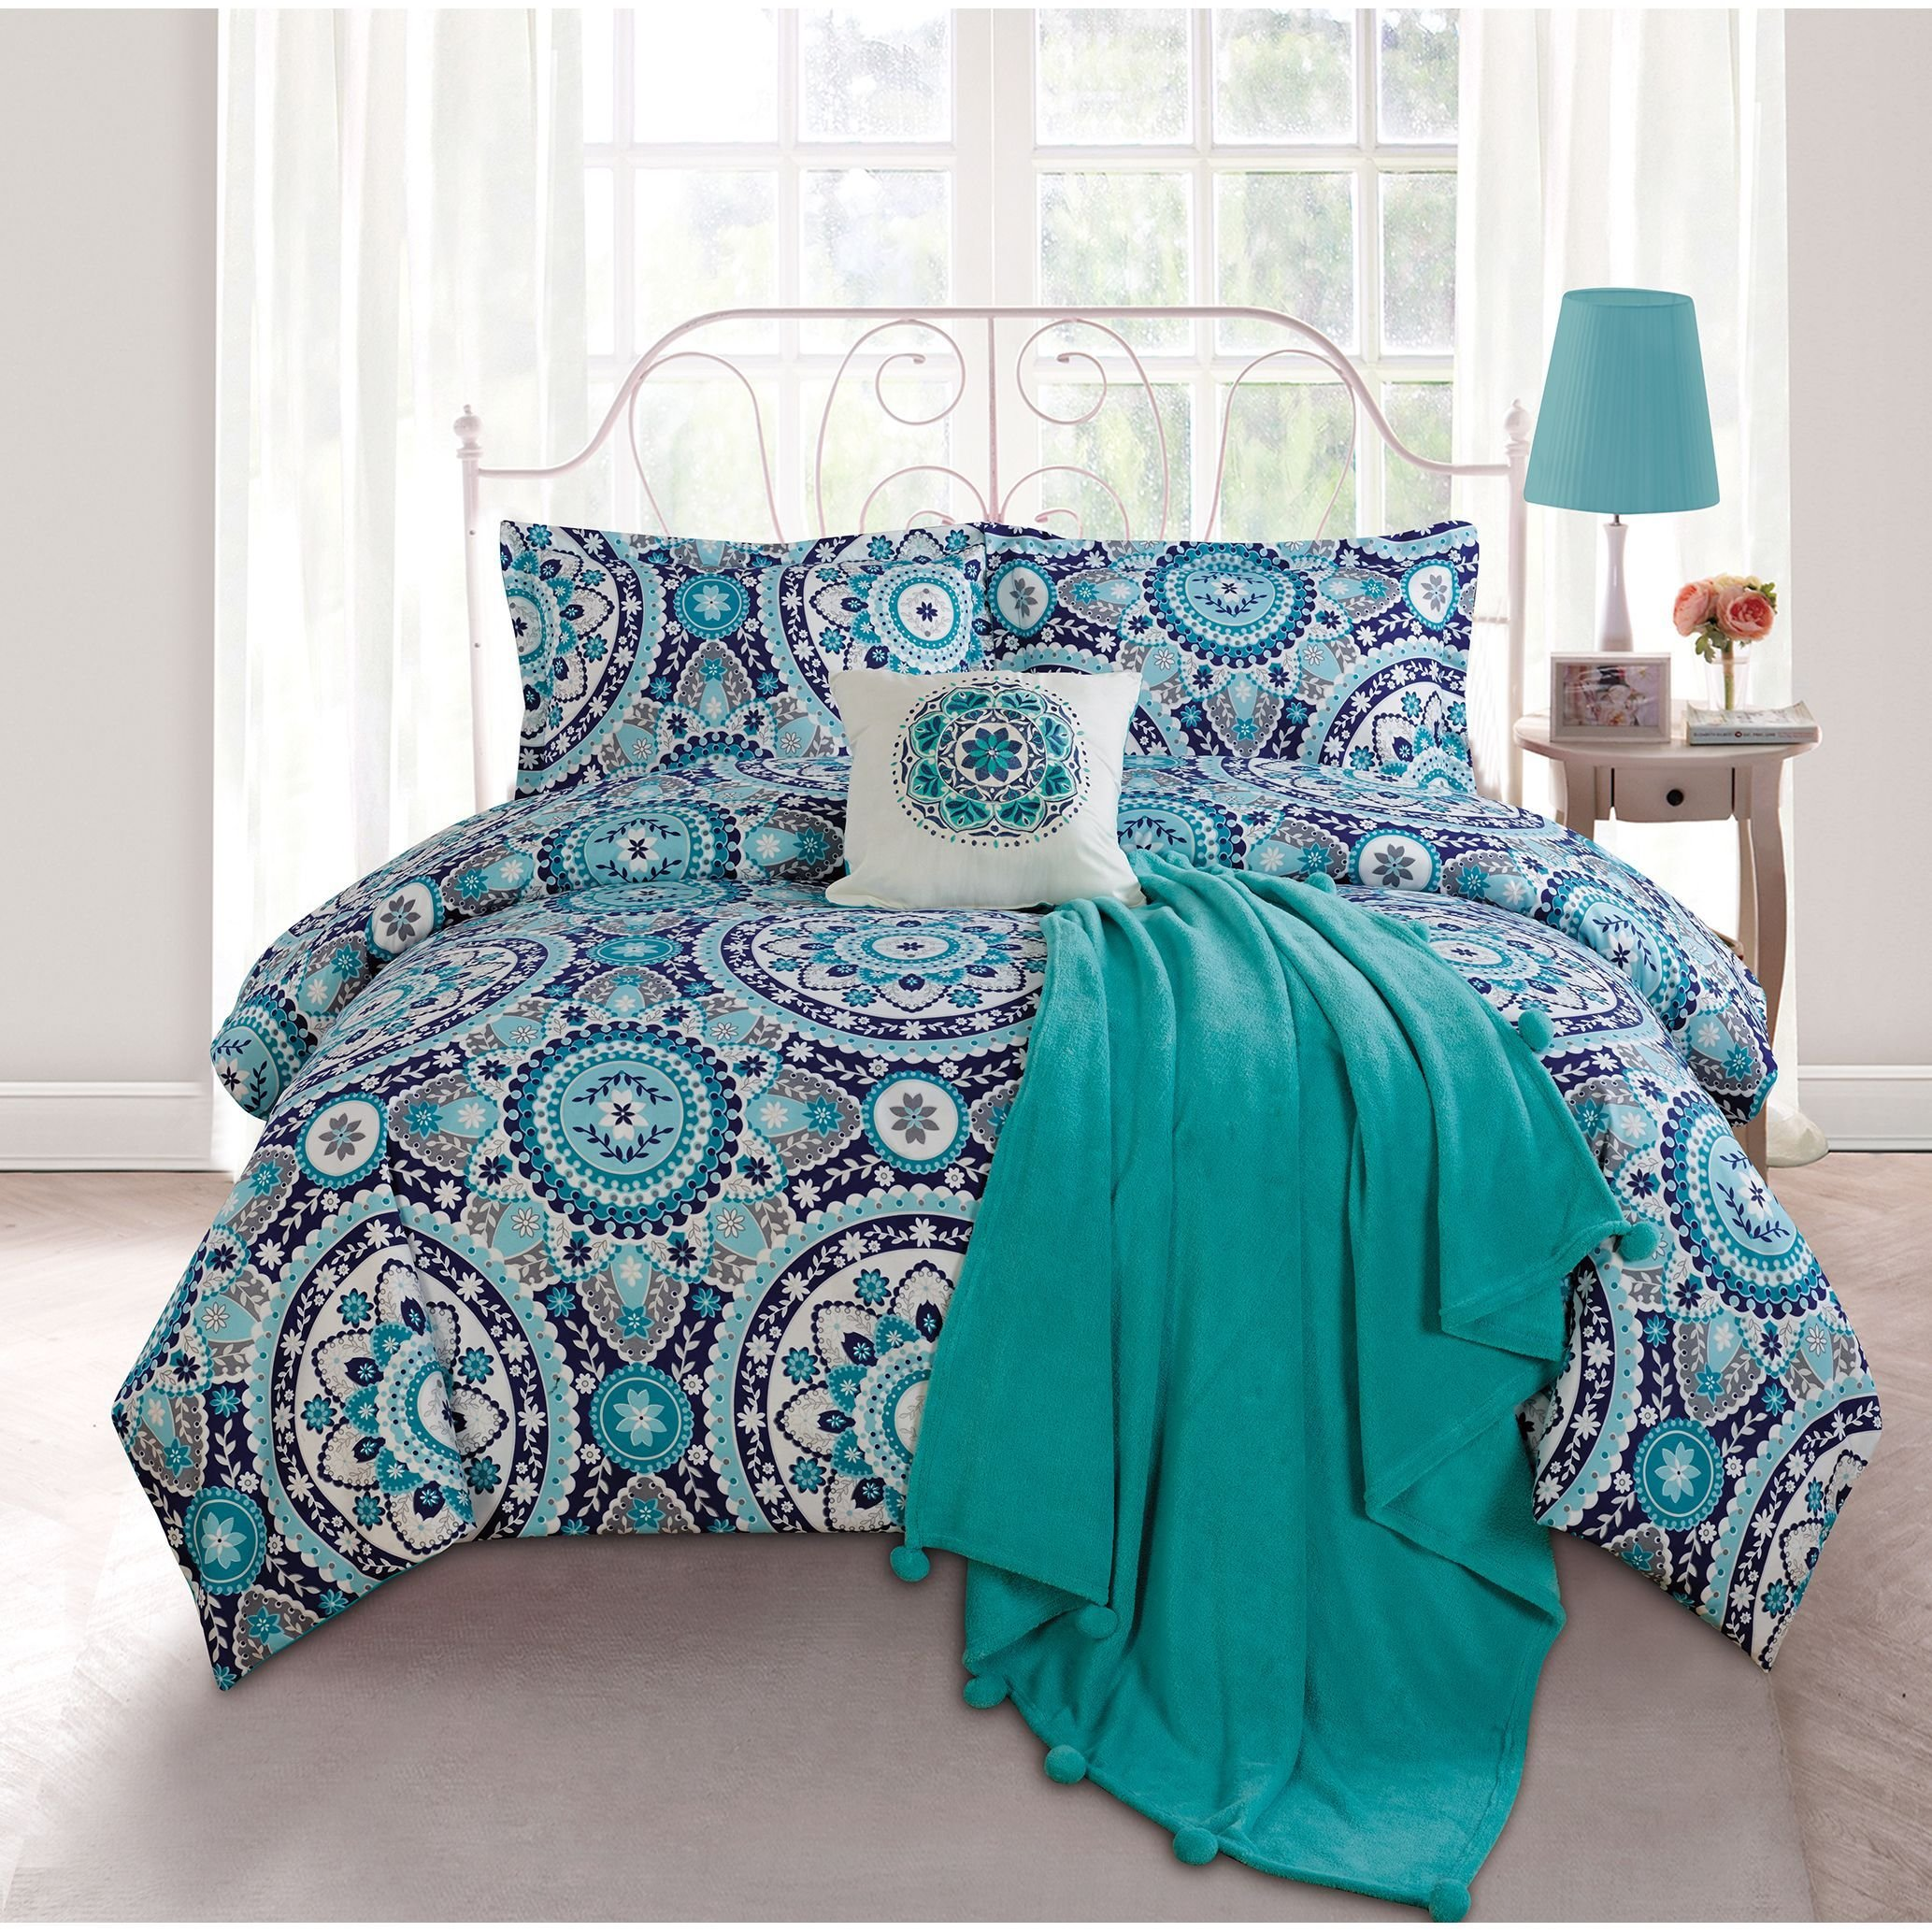 Best Decorate Your Dorm Room Or Bedroom With This Cute Navy With Pictures